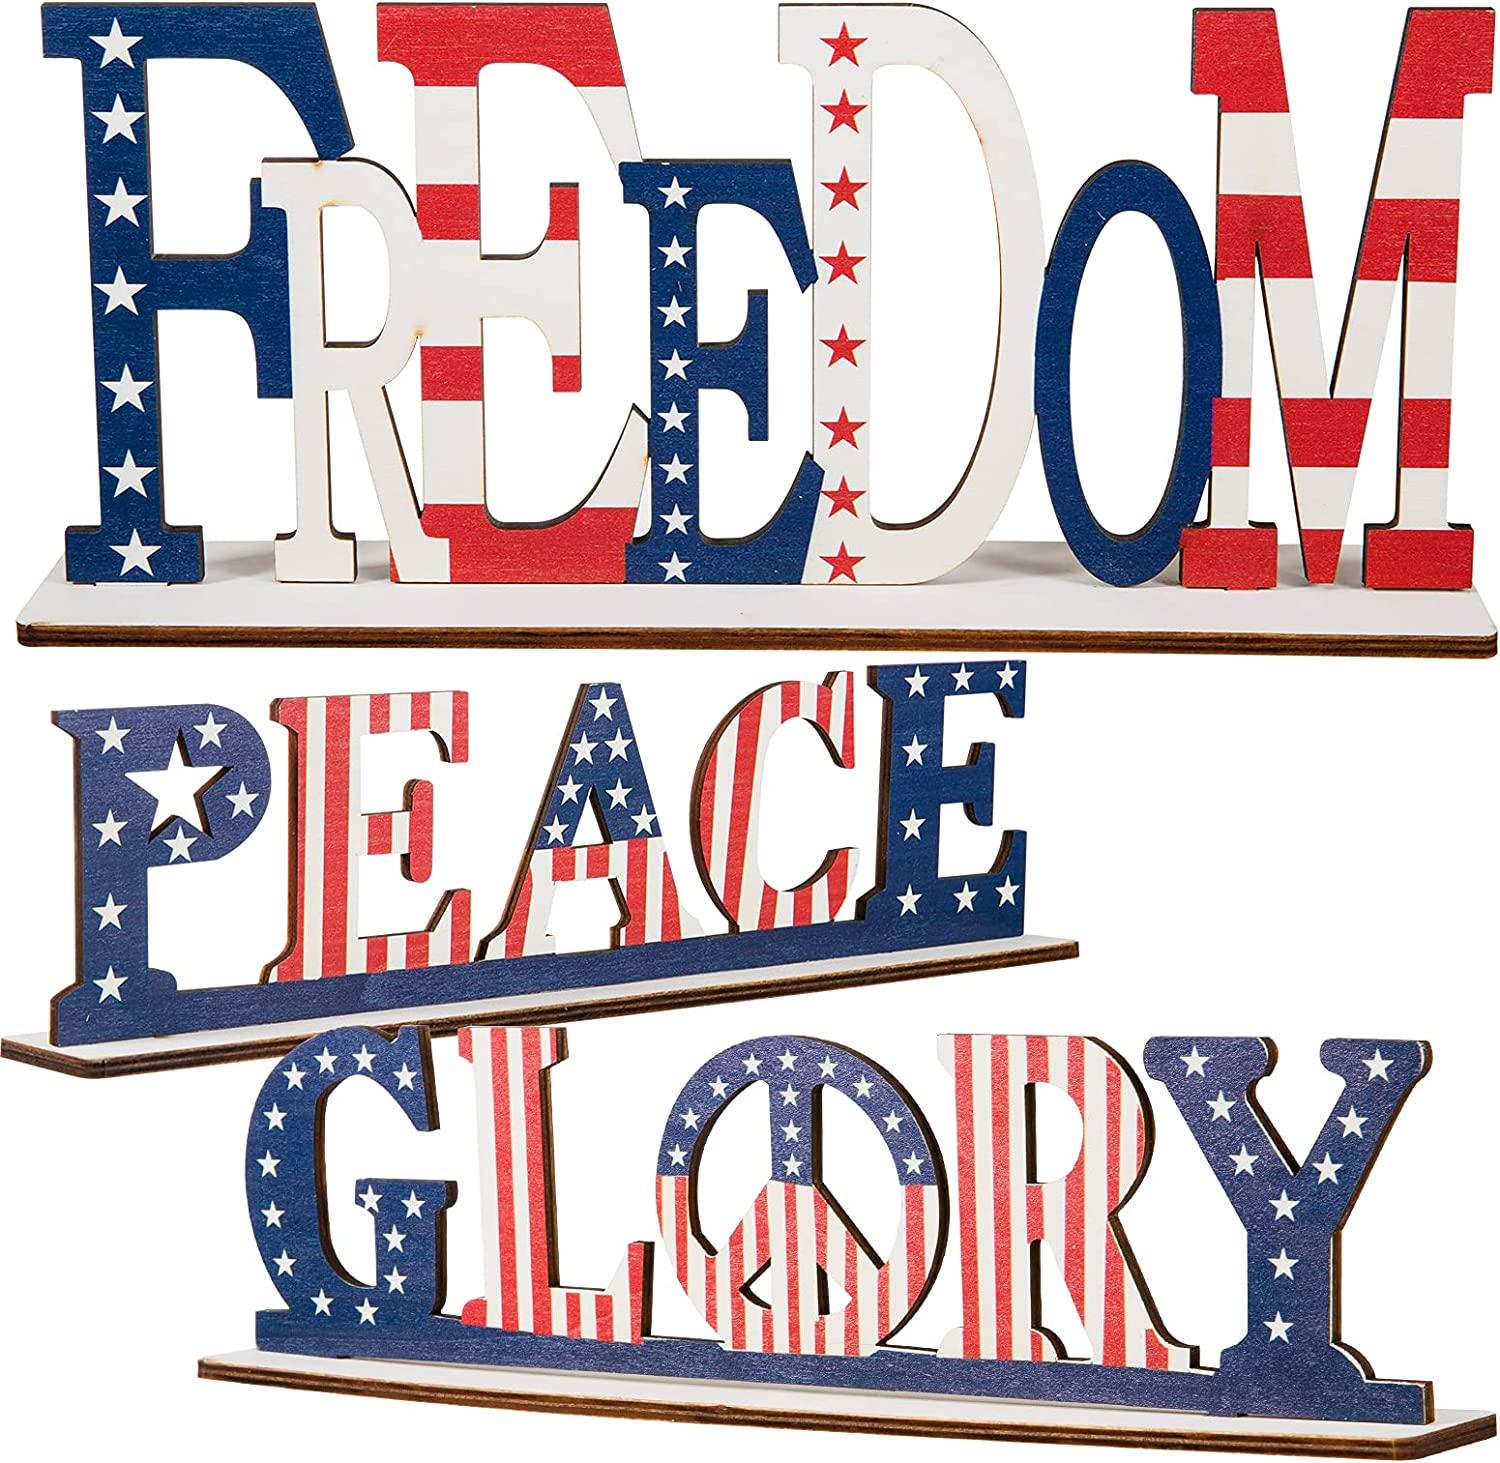 3 Pack Independence Day Wood Tabletop Decorations- 4th of July American Flag Freedom Peace Glory Letter Signs Pattern Patriotic Table Centerpiece for Independence Day Home Office Parties Table Decors